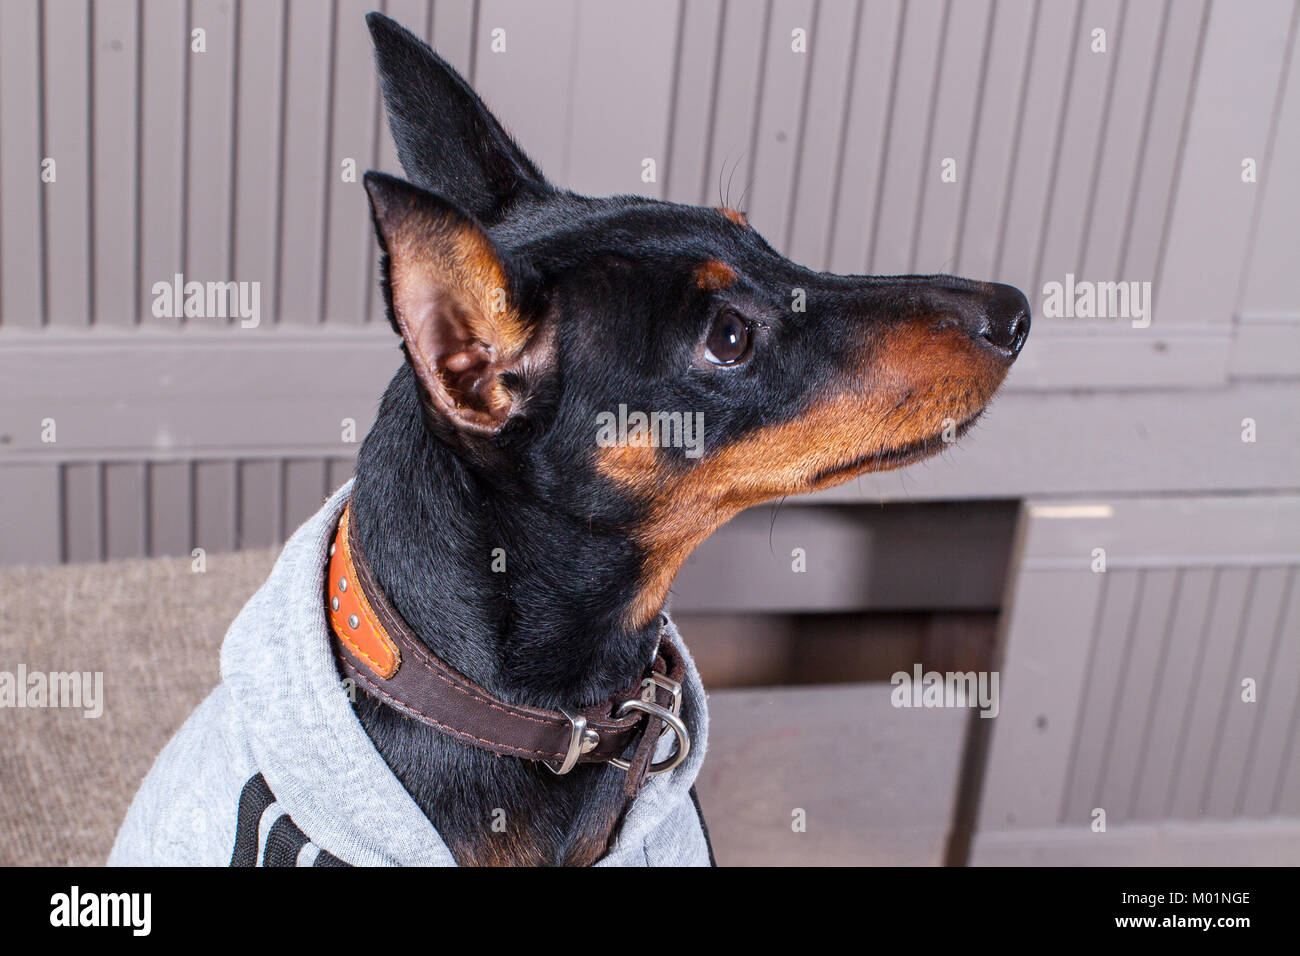 Doberman Pinscher A Small Black Brown Dog On The Table Puppy In